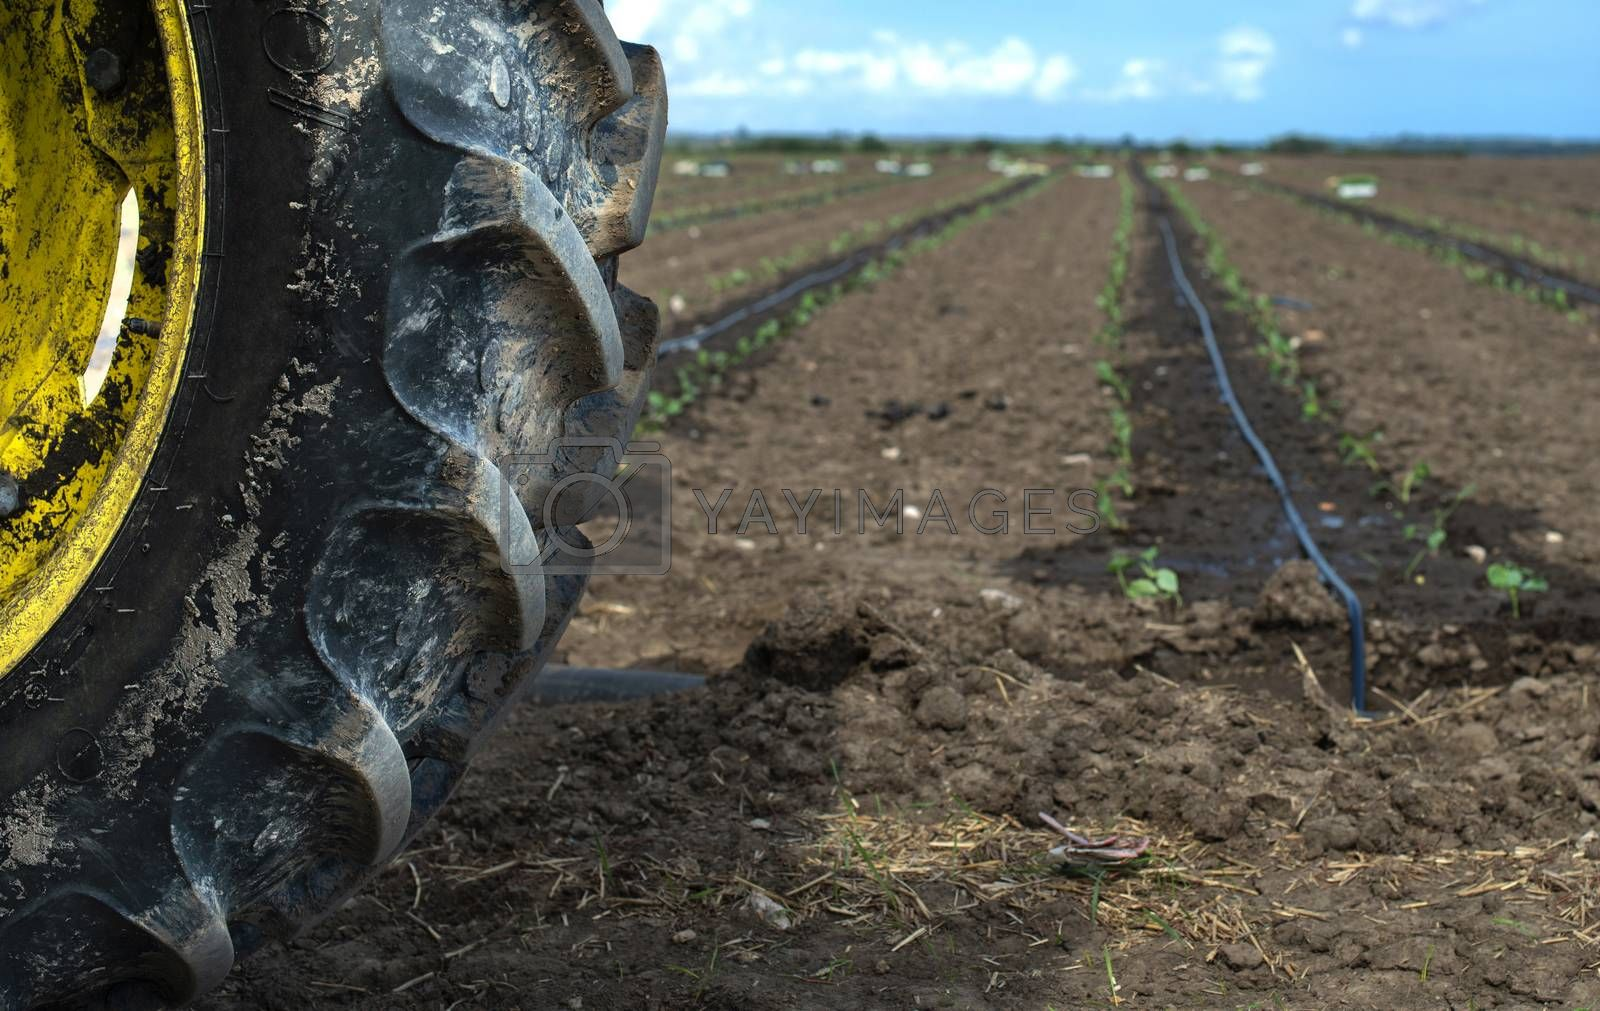 Tractor tire seedlings in rows on the agriculture land. Planting new plants in soil. Big plantation. Planting broccoli in industrial farm.